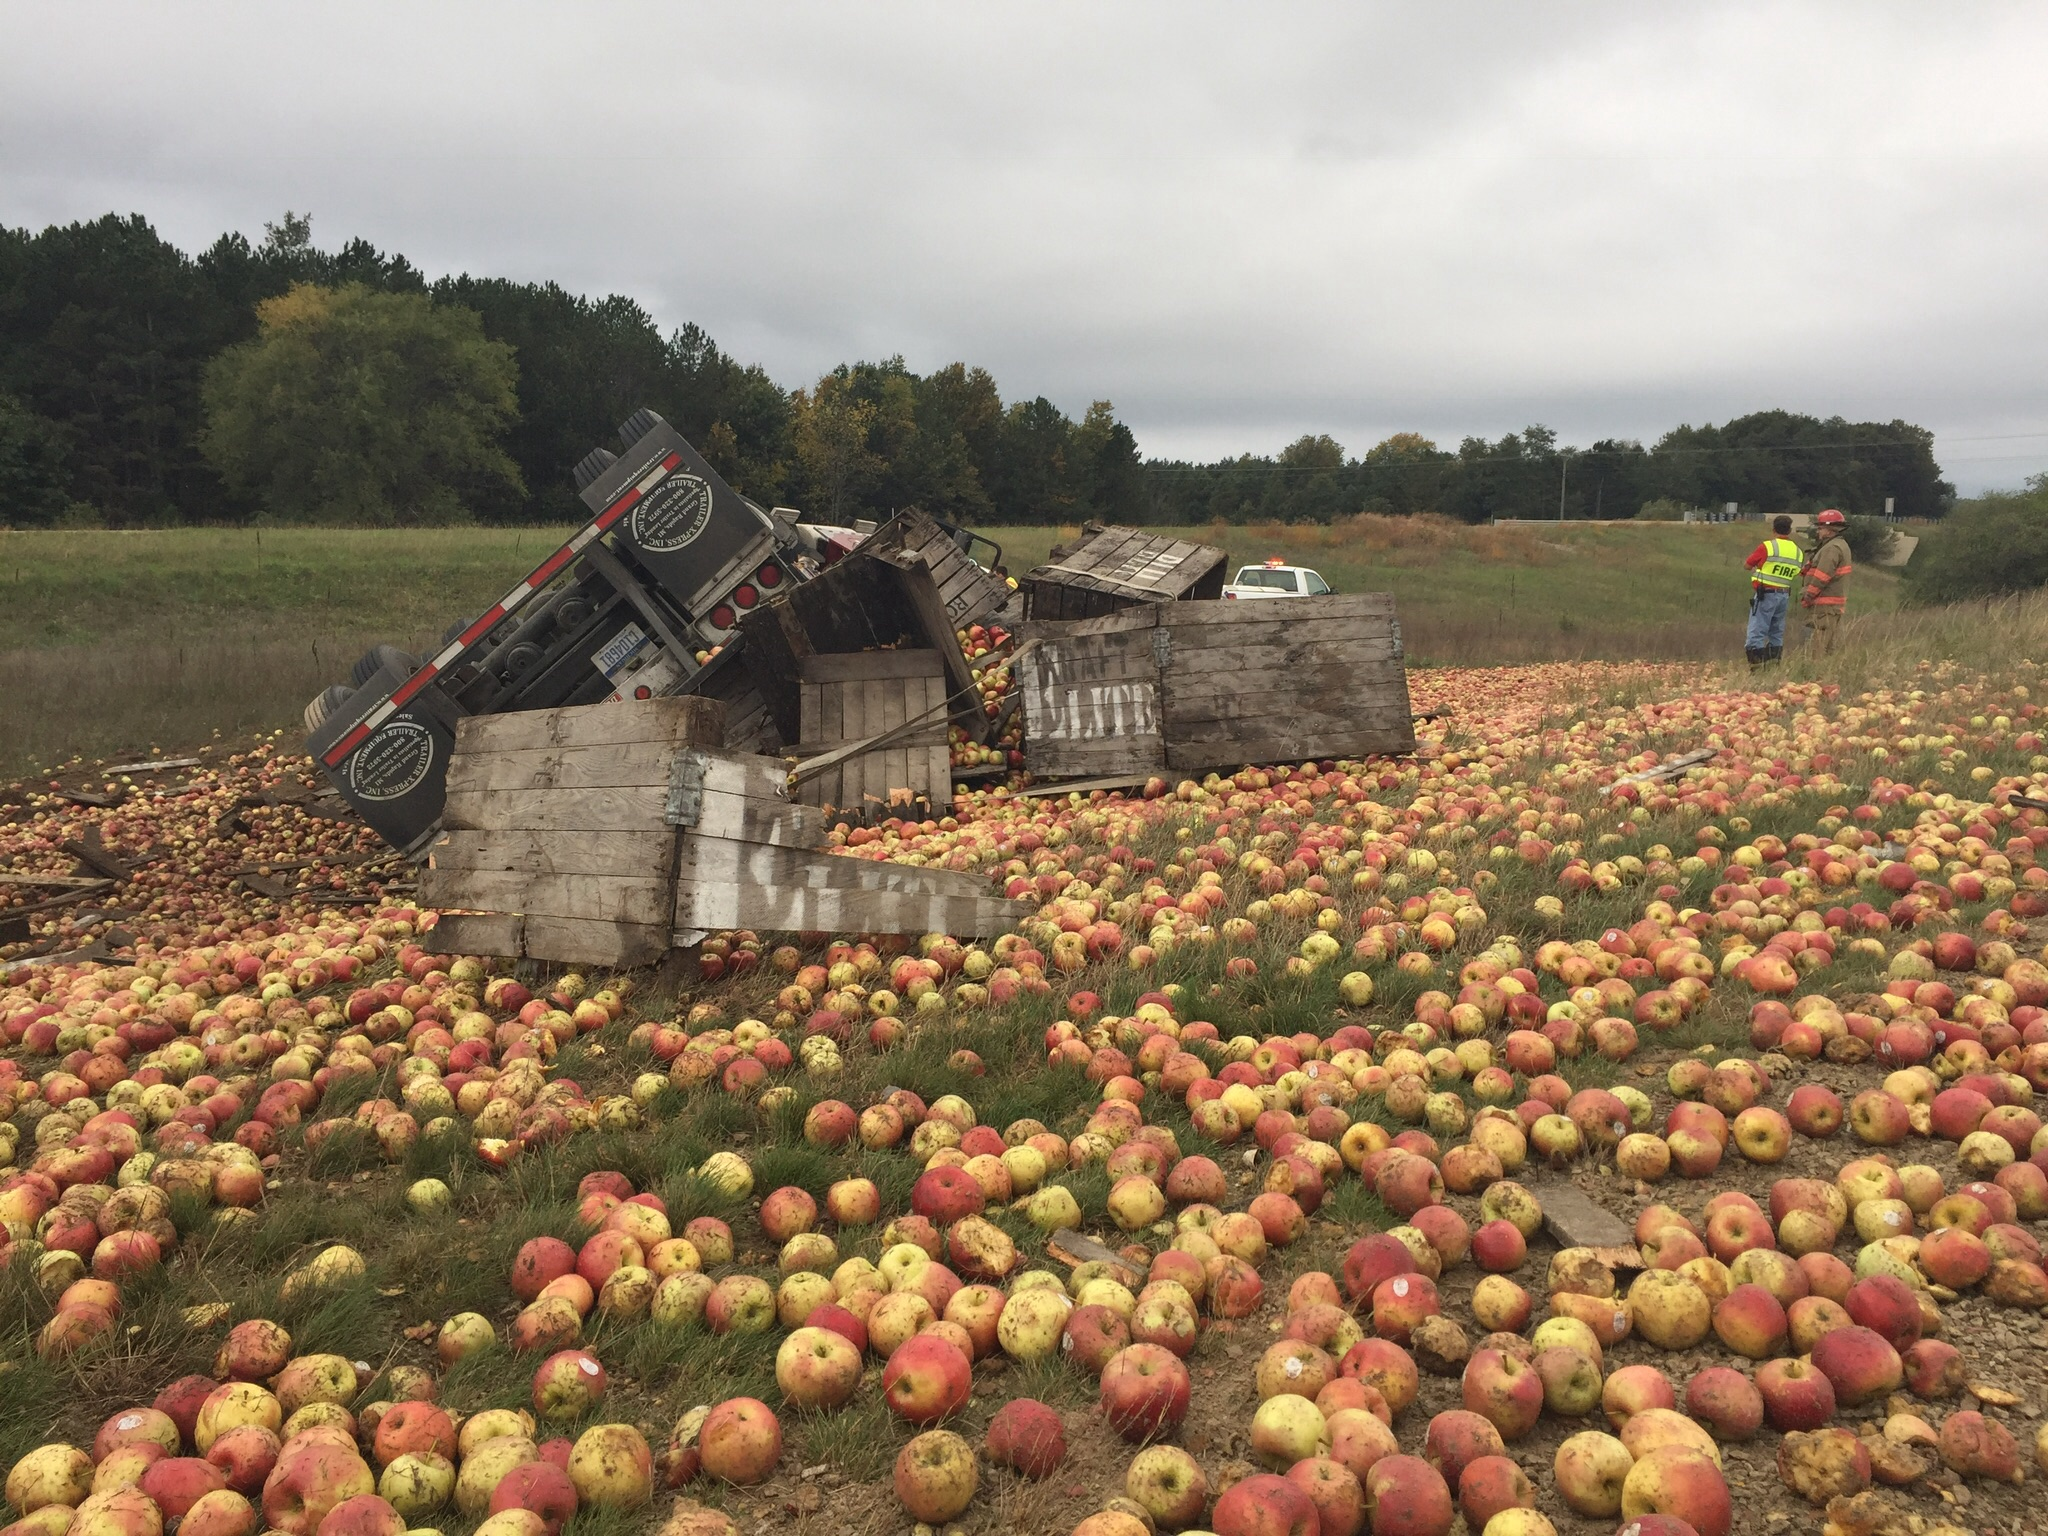 80,000 apples spill when semi rolls over.